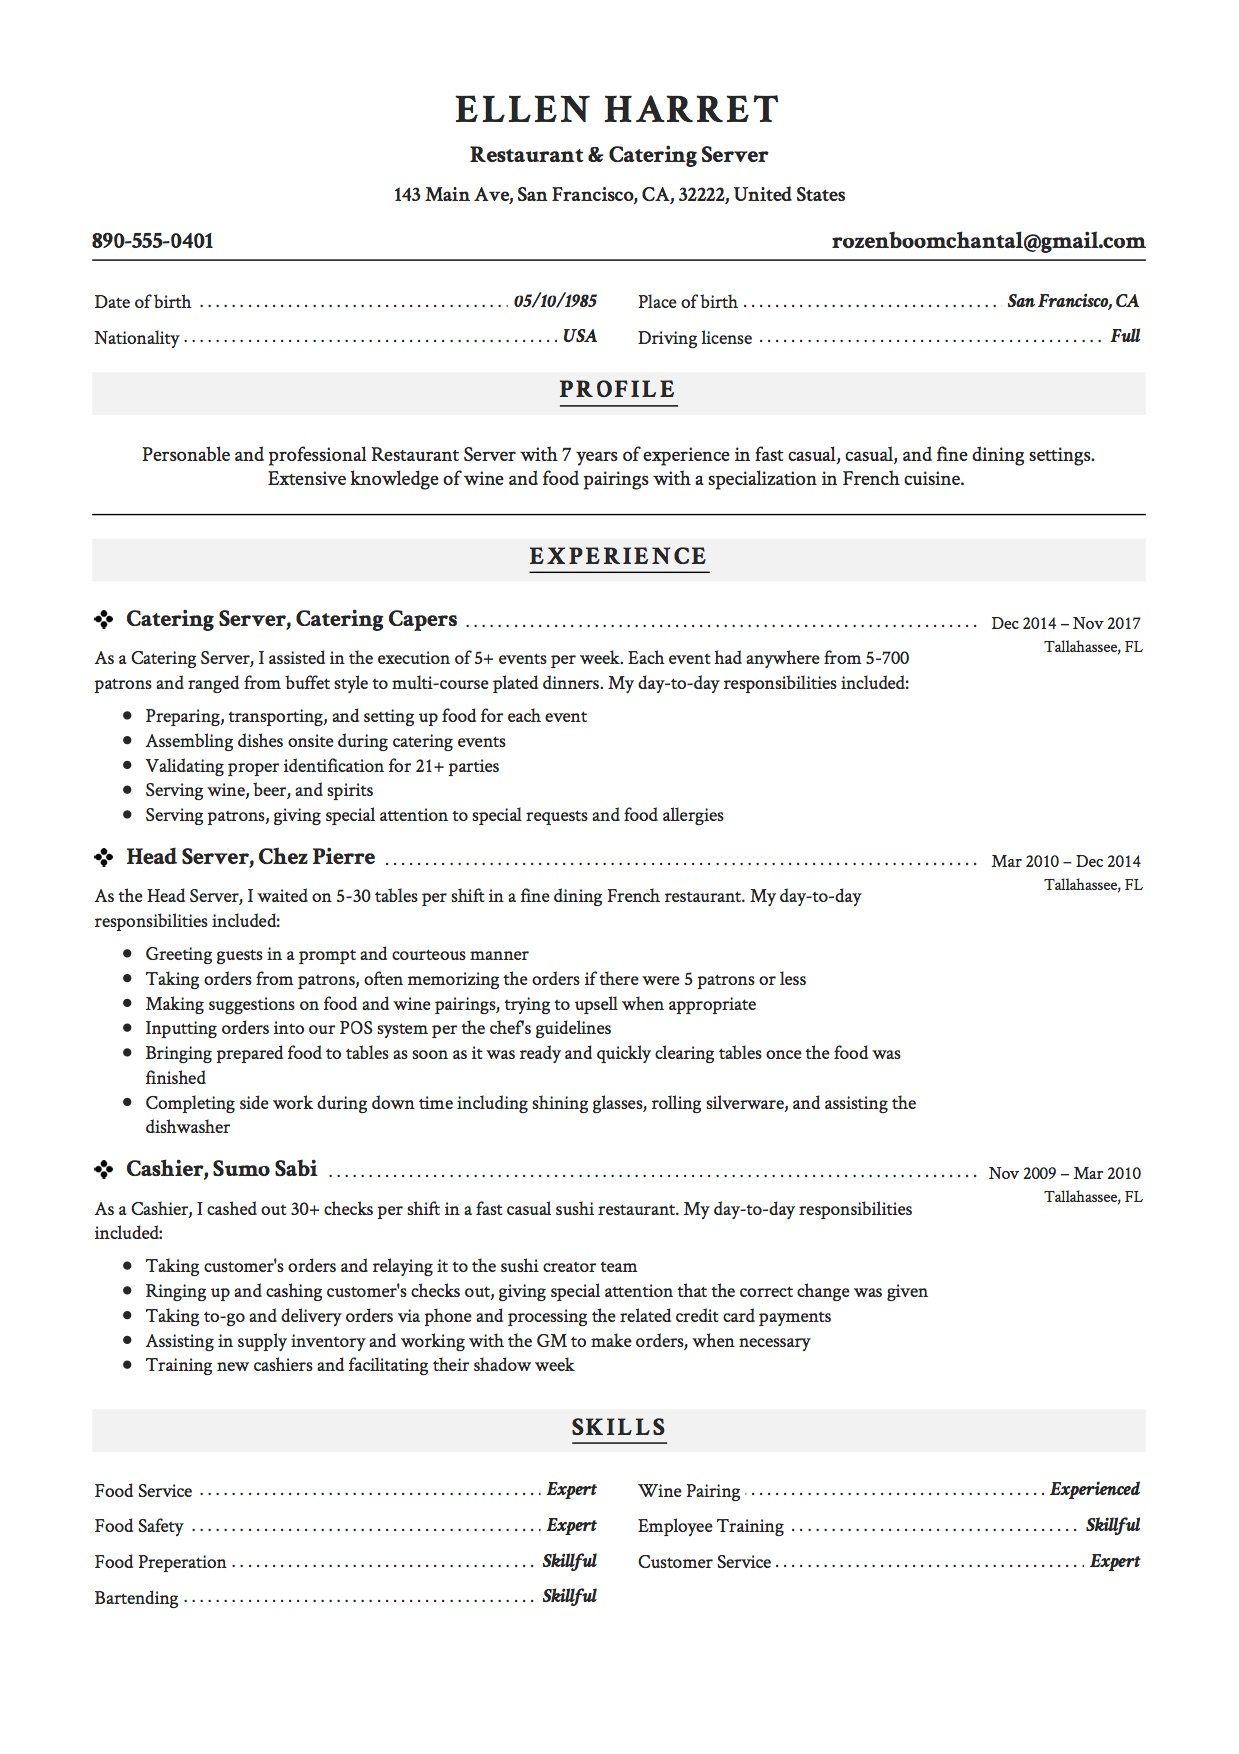 11 Restaurant Server Resume Samples ResumeVikingcom